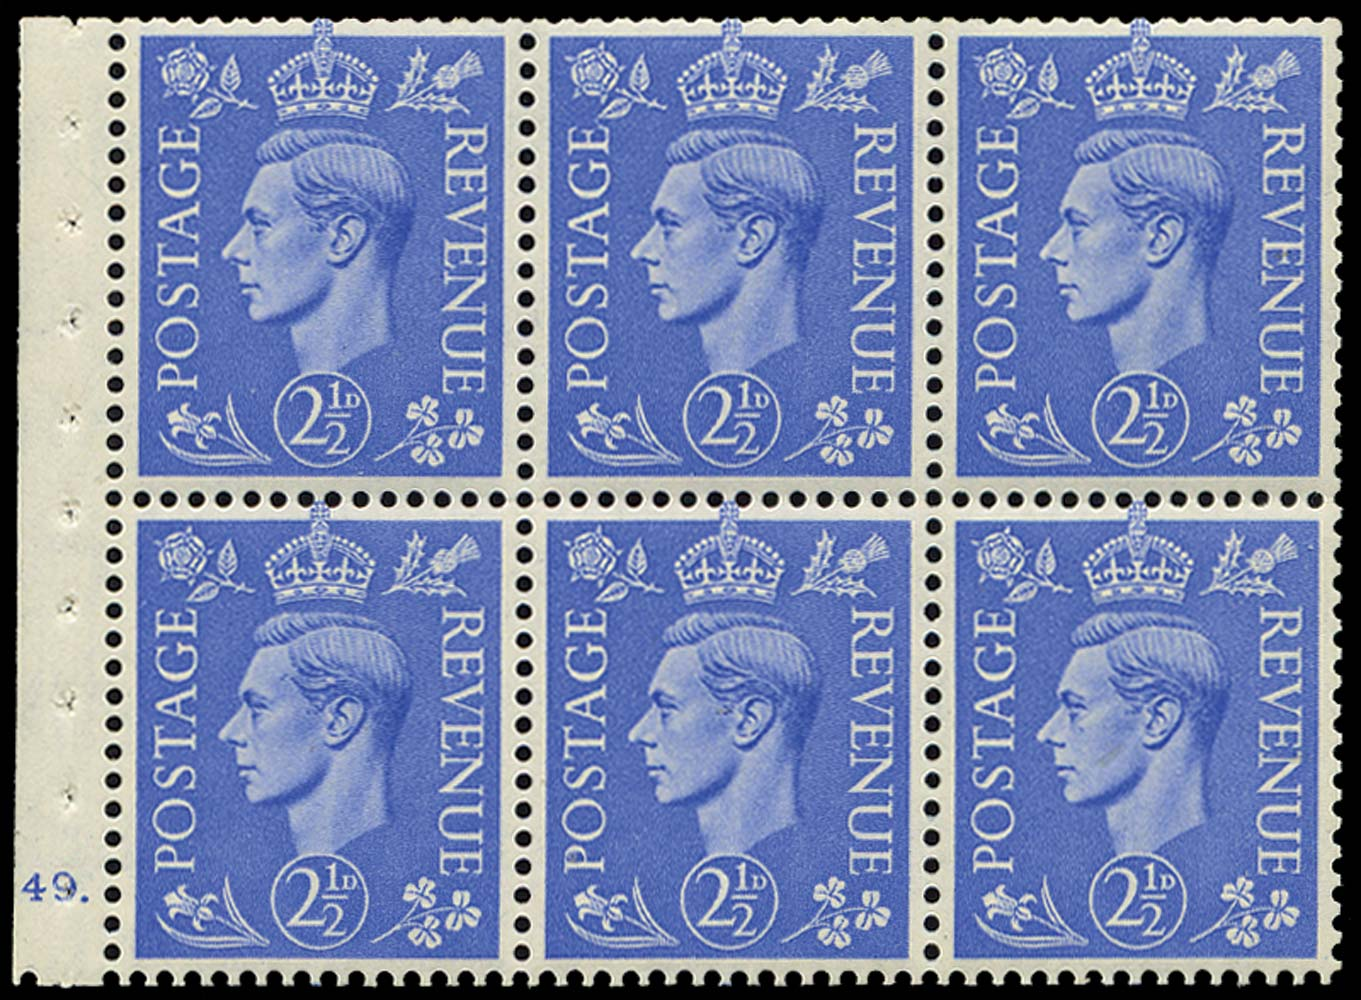 GB 1942  SG489f Booklet pane - Cylinder J49. (dot)